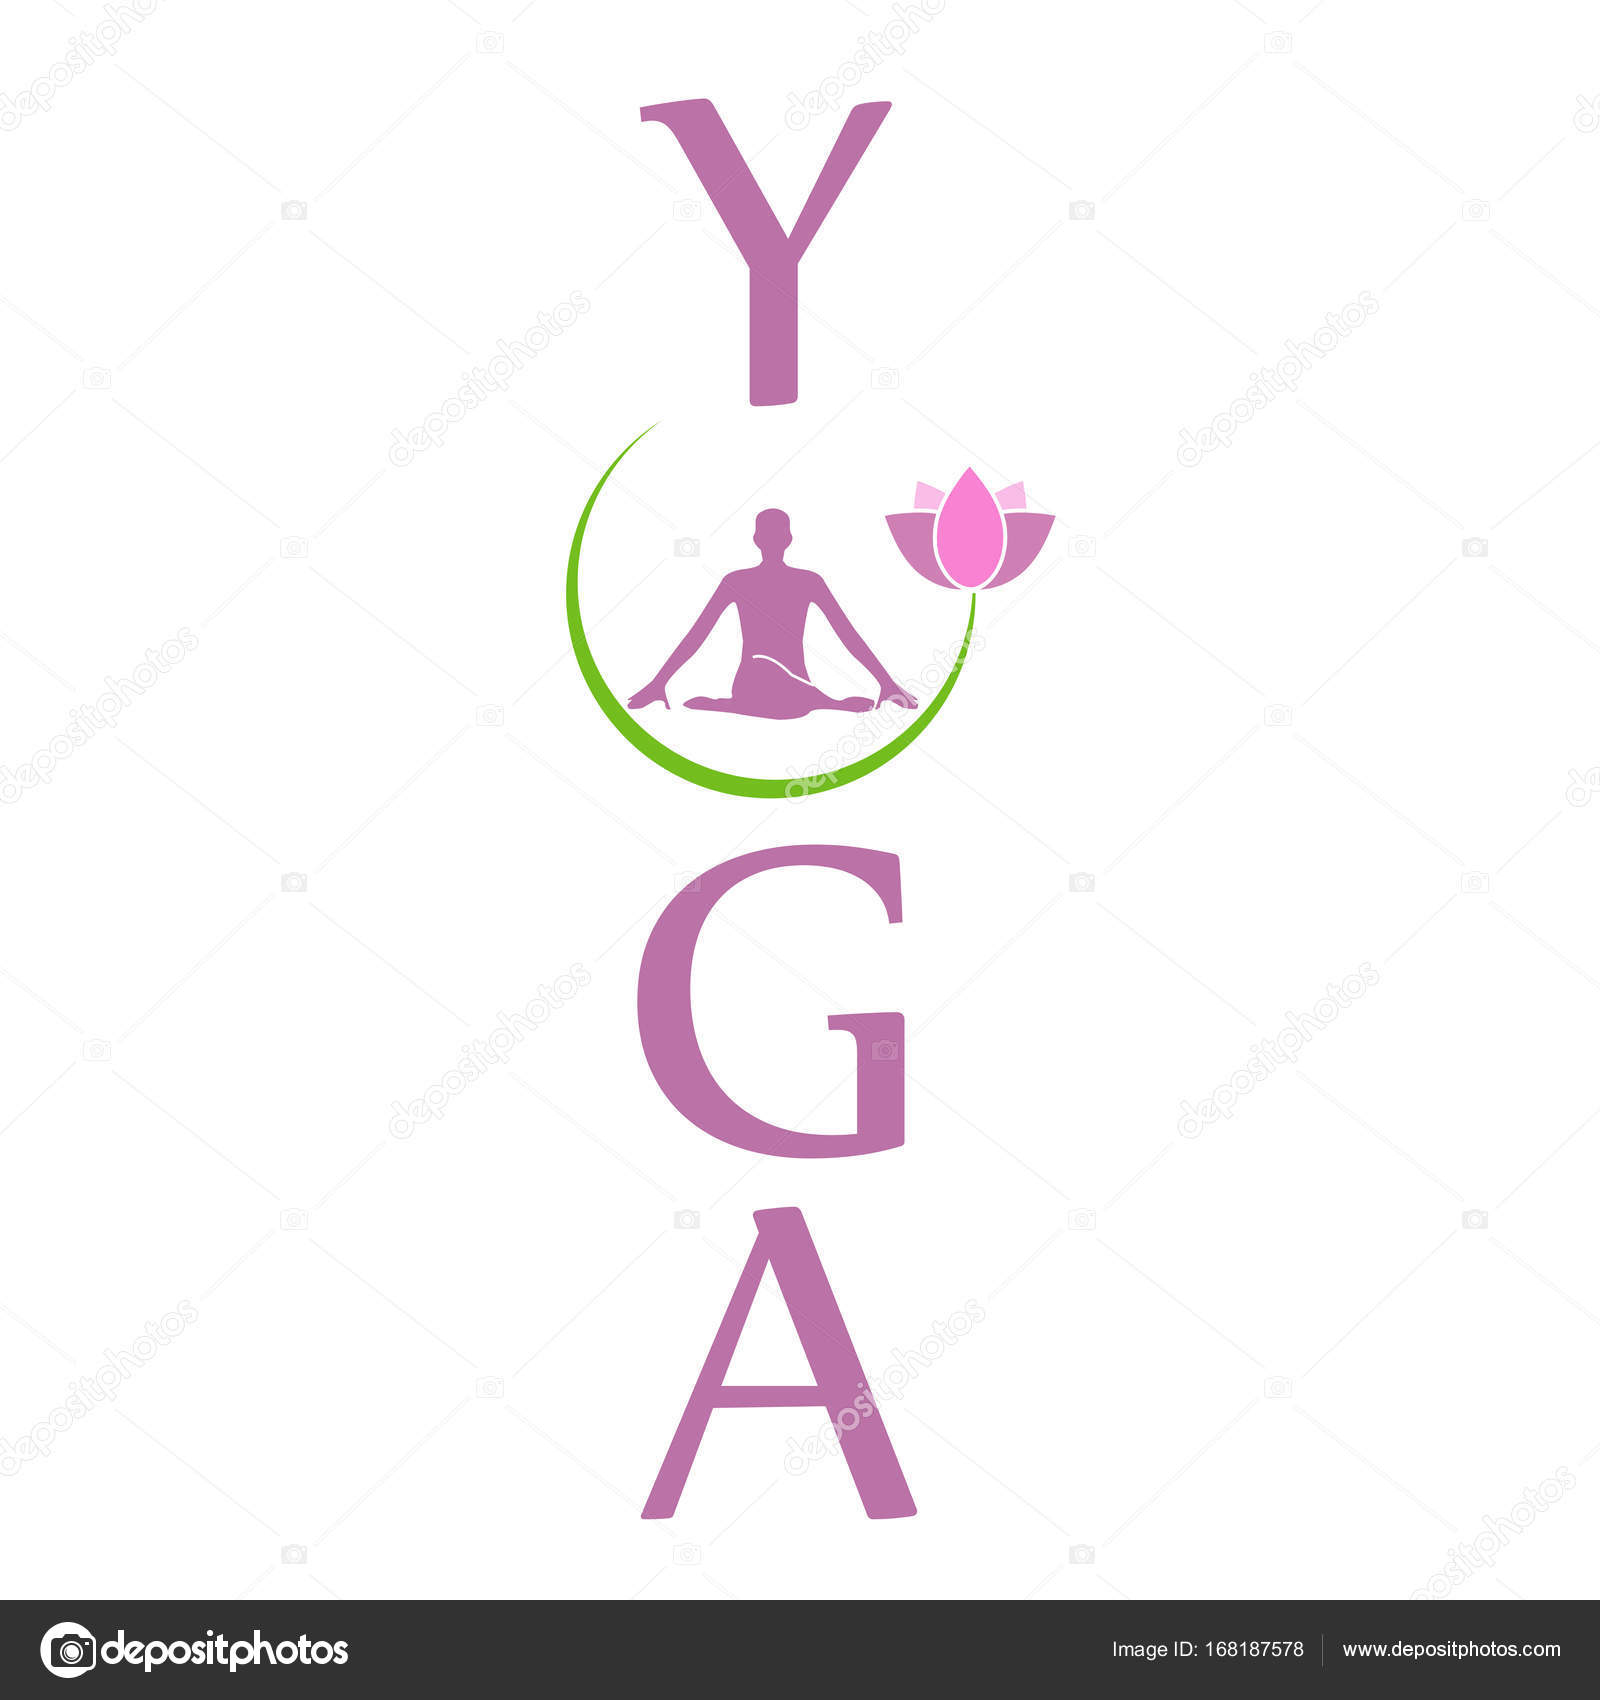 Lotus flower symbol yoga stock vector sanayamirza 168187578 lotus flower symbol yoga stock vector izmirmasajfo